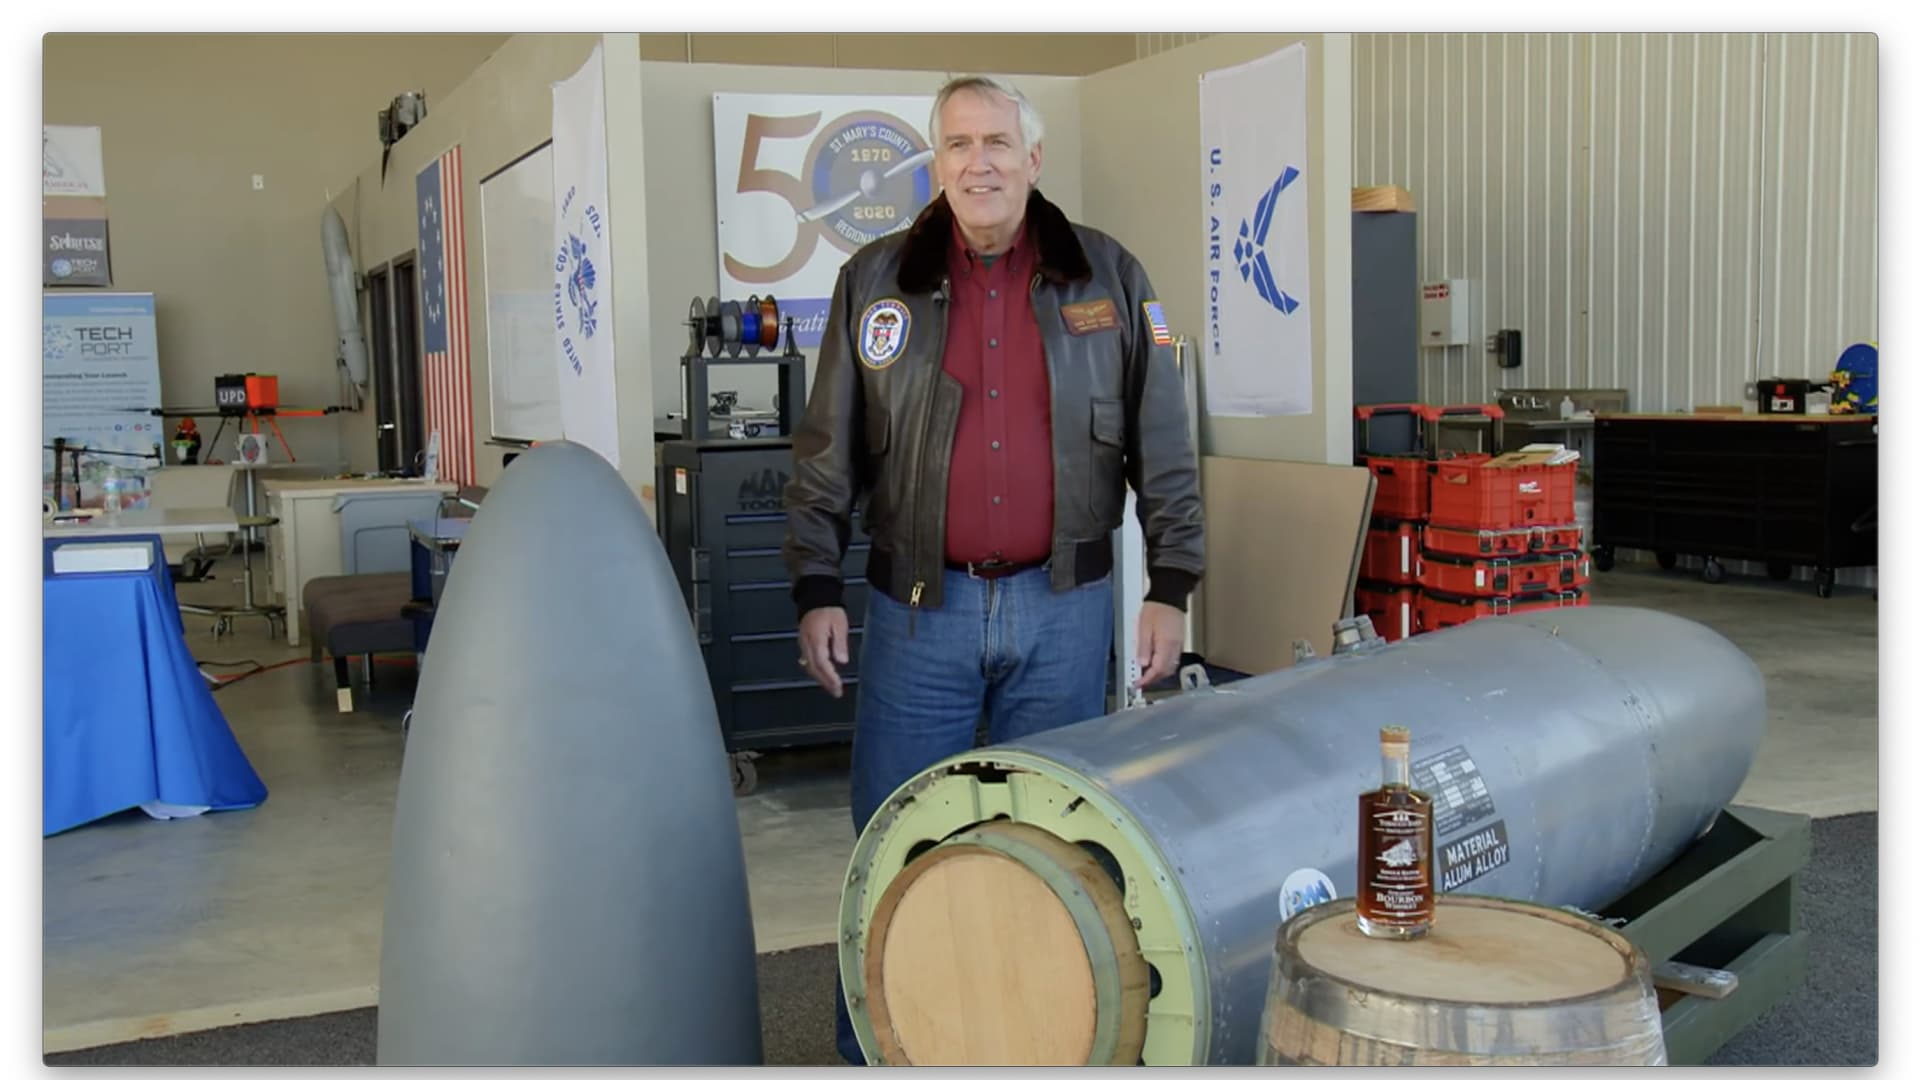 Retired Navy Rear Adm. Scott Sanders explains how the Harrier's reconfigured fuel tank can hold two 25-gallon barrels of bourbon.